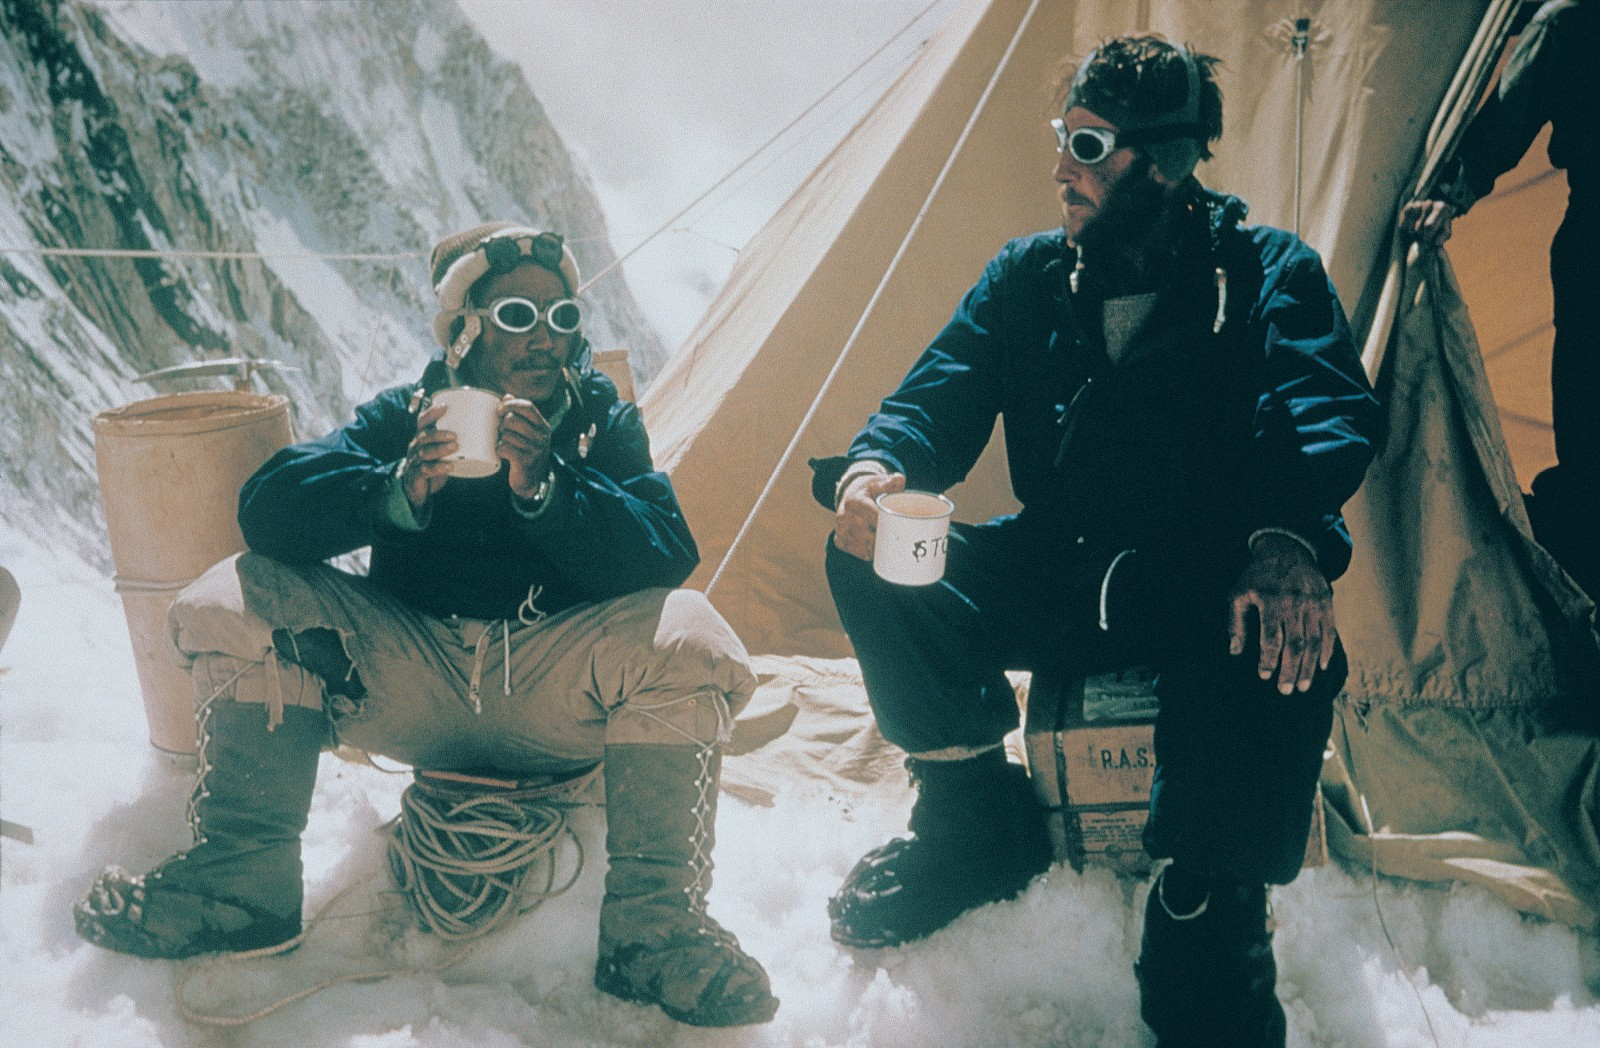 Tenzing and Hillary—just after standing on the highest mountain in the world, and just before being catapulted into the international spotlight—celebrated their impressive achievement in time-honoured British fashion with a mug of tea.